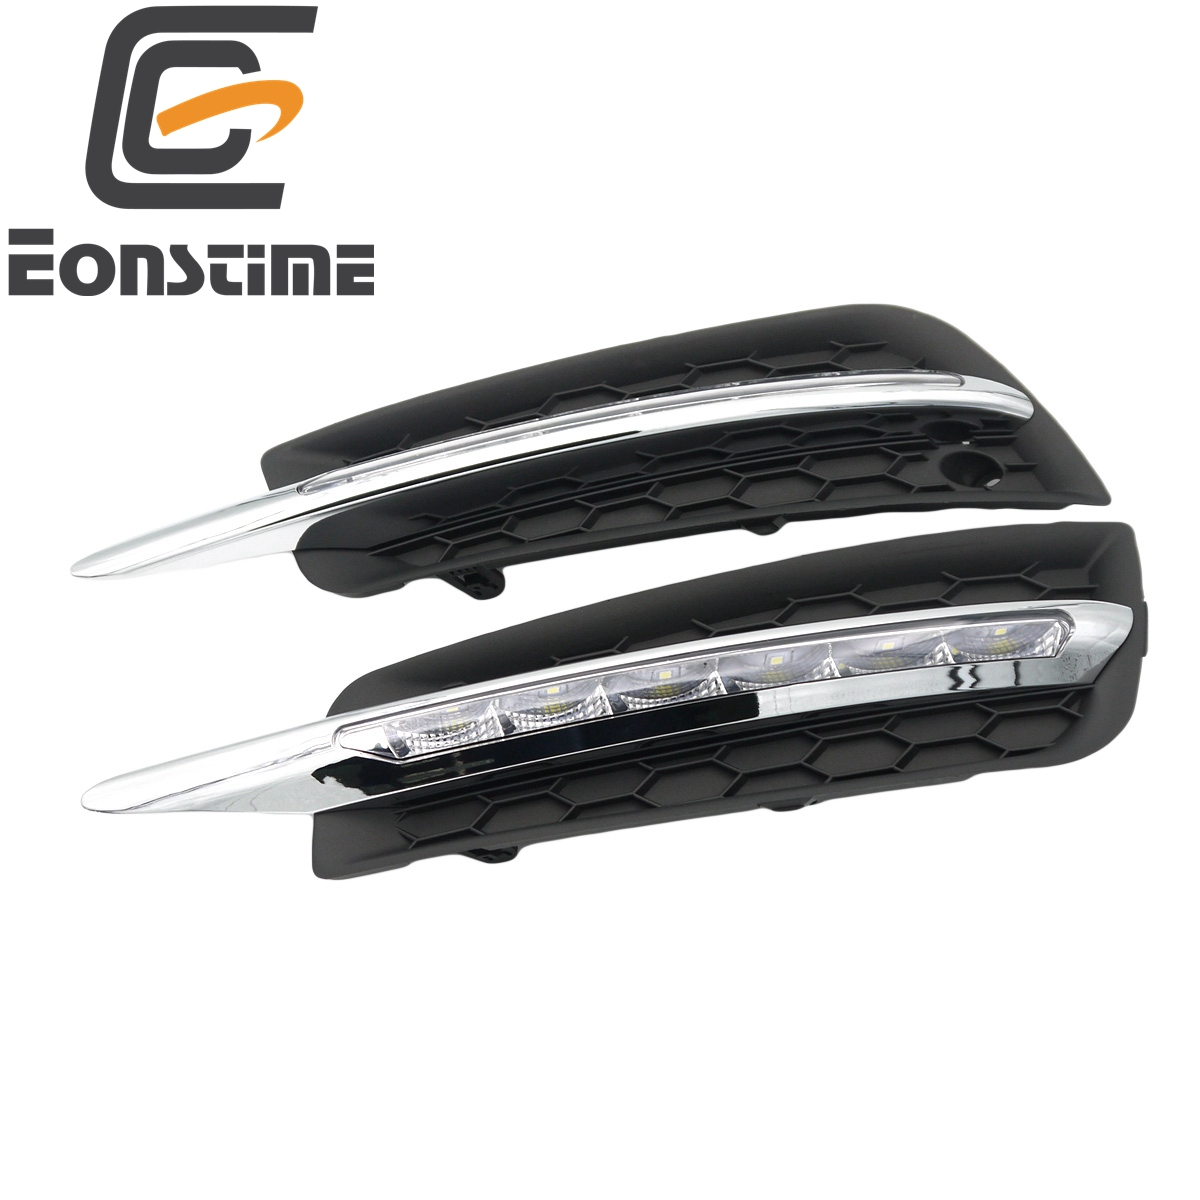 Eonstime 1 set car 6LED DRL Driving Daytime <font><b>Running</b></font> <font><b>Light</b></font> lamp Relay 12V Daylight for <font><b>chevrolet</b></font> <font><b>cruze</b></font> 2009 2010 <font><b>2011</b></font> 2012 2013 image